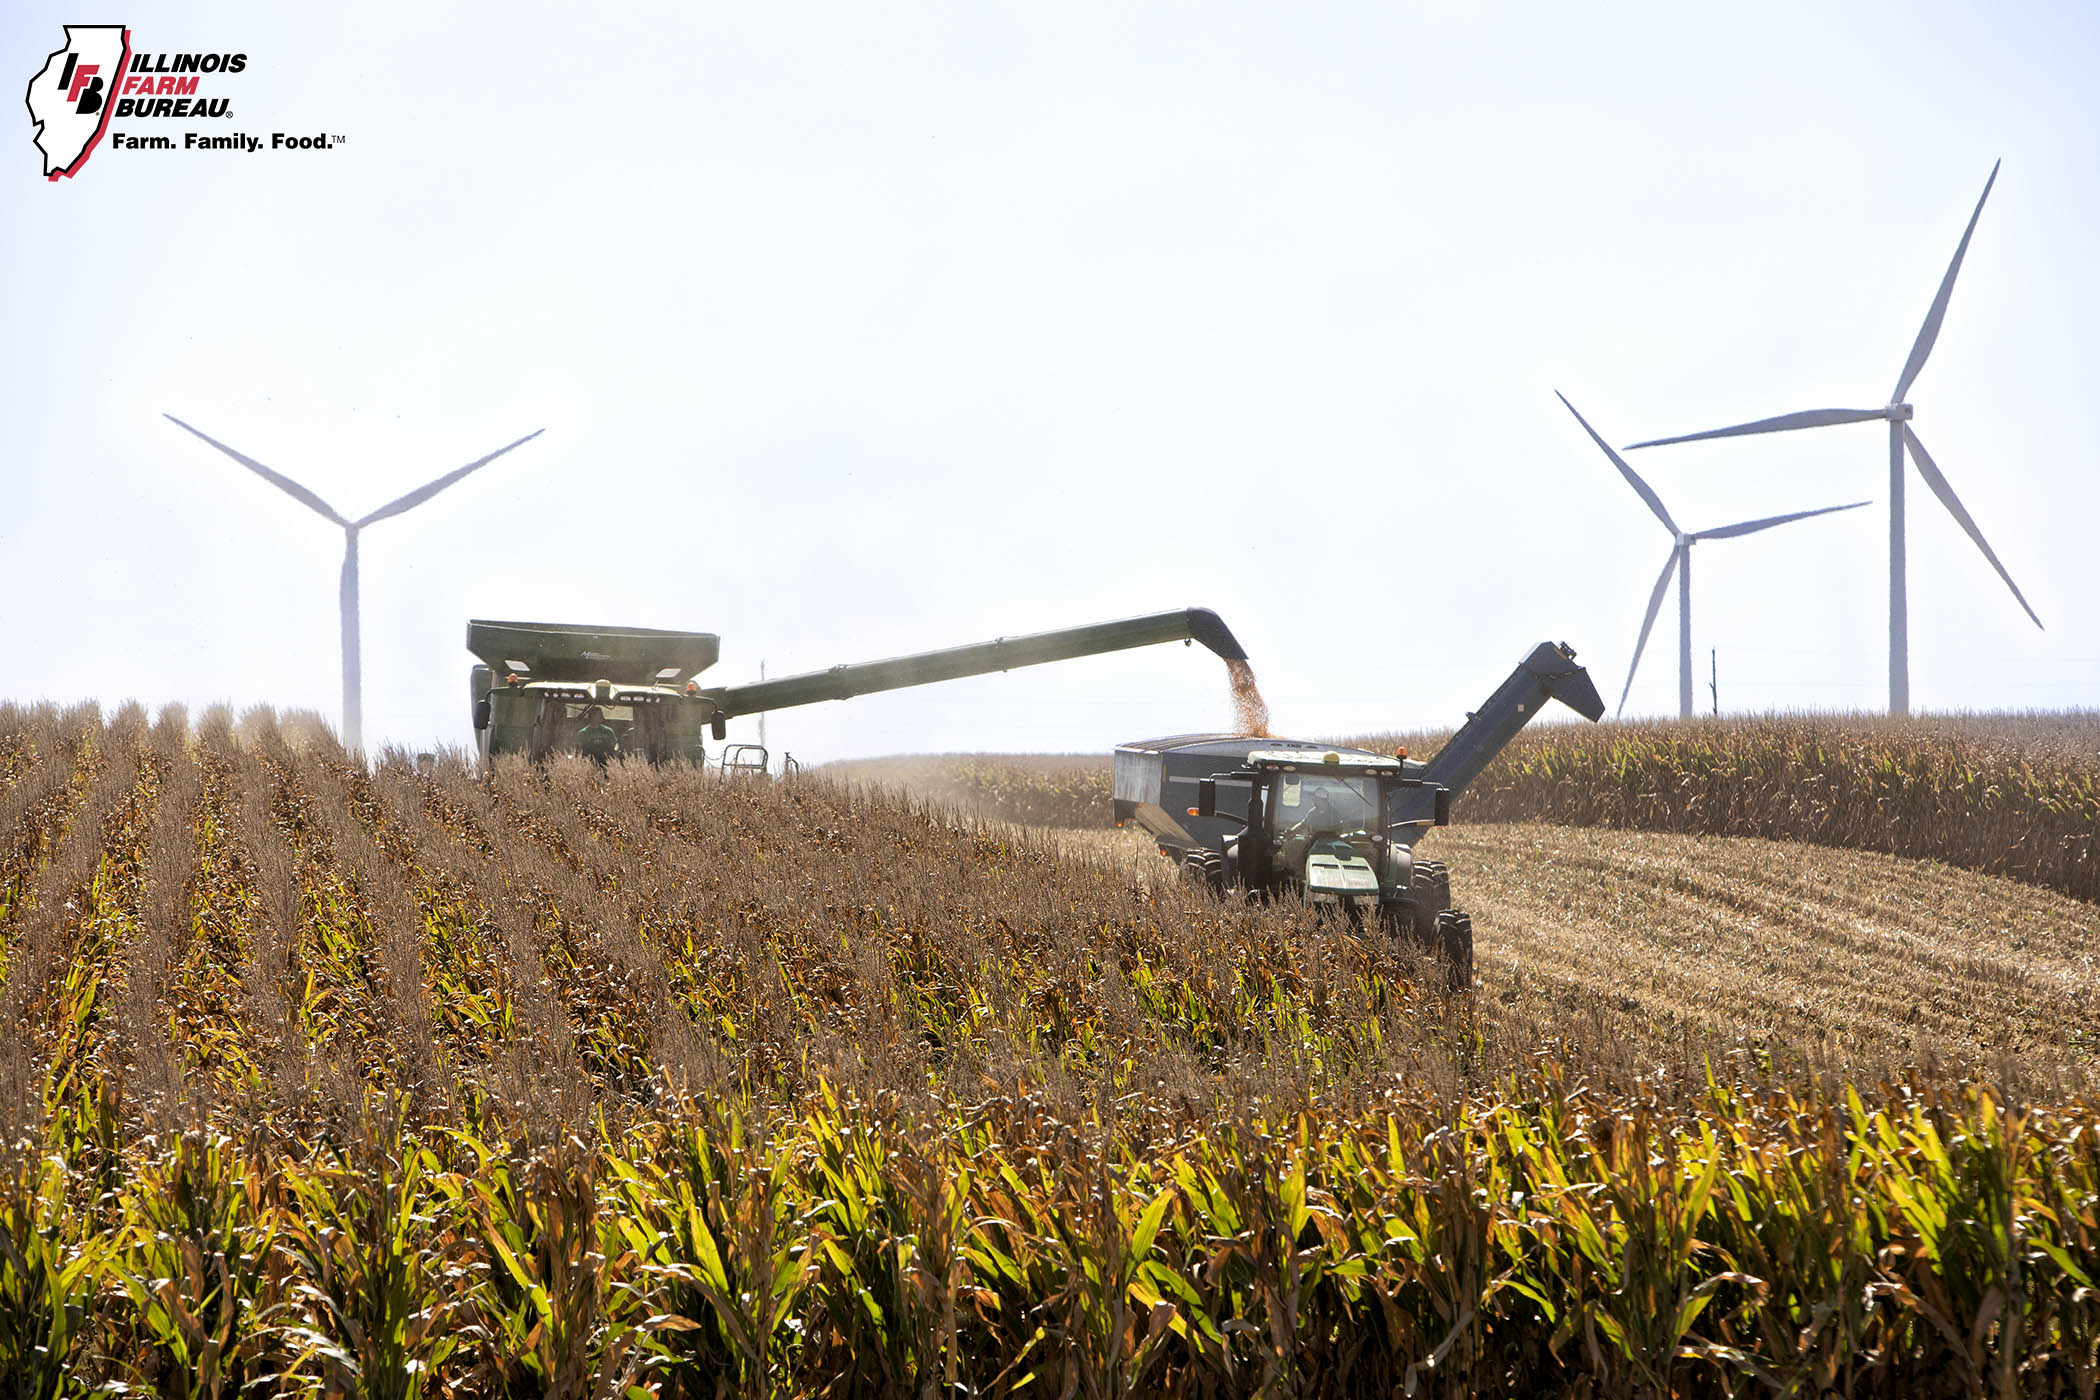 NASS answers Illinois farmers' questions